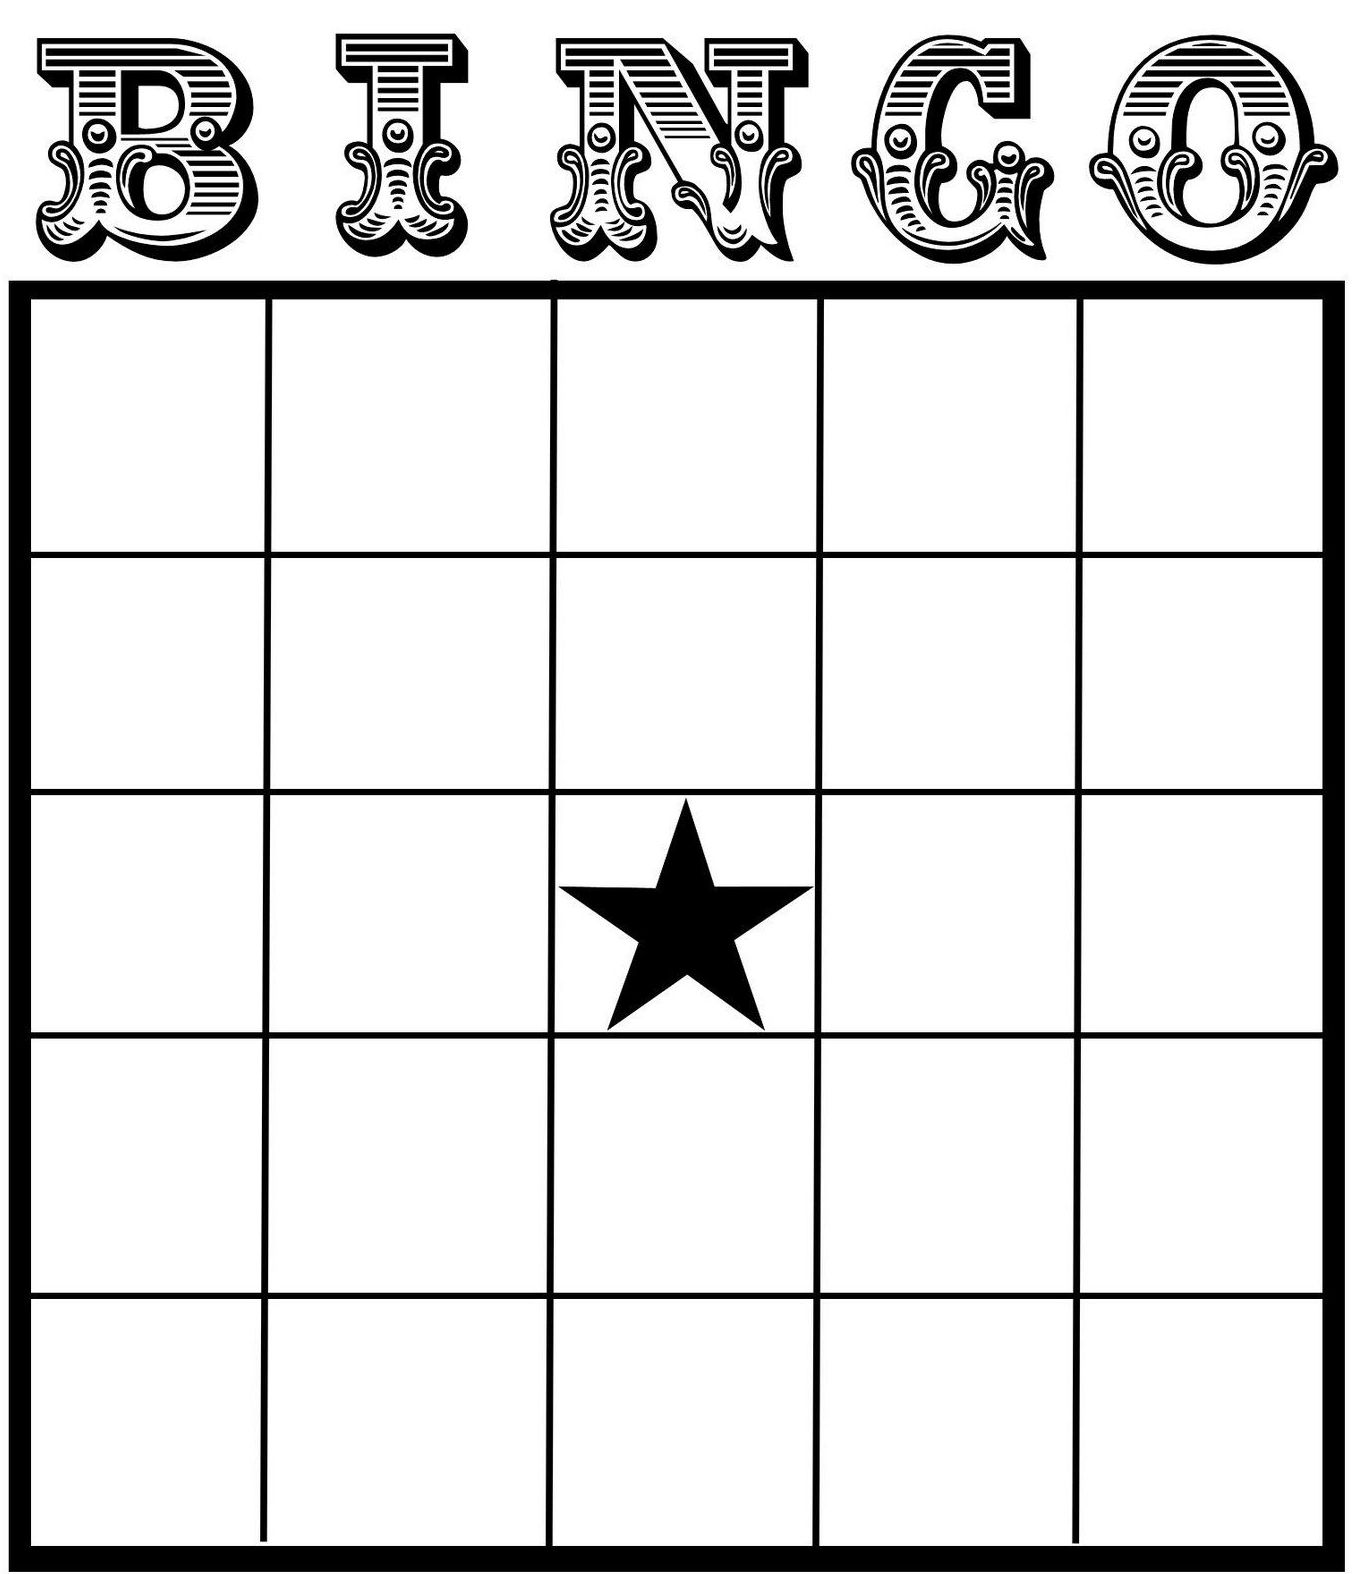 25 Amusing Blank Bingo Cards For All